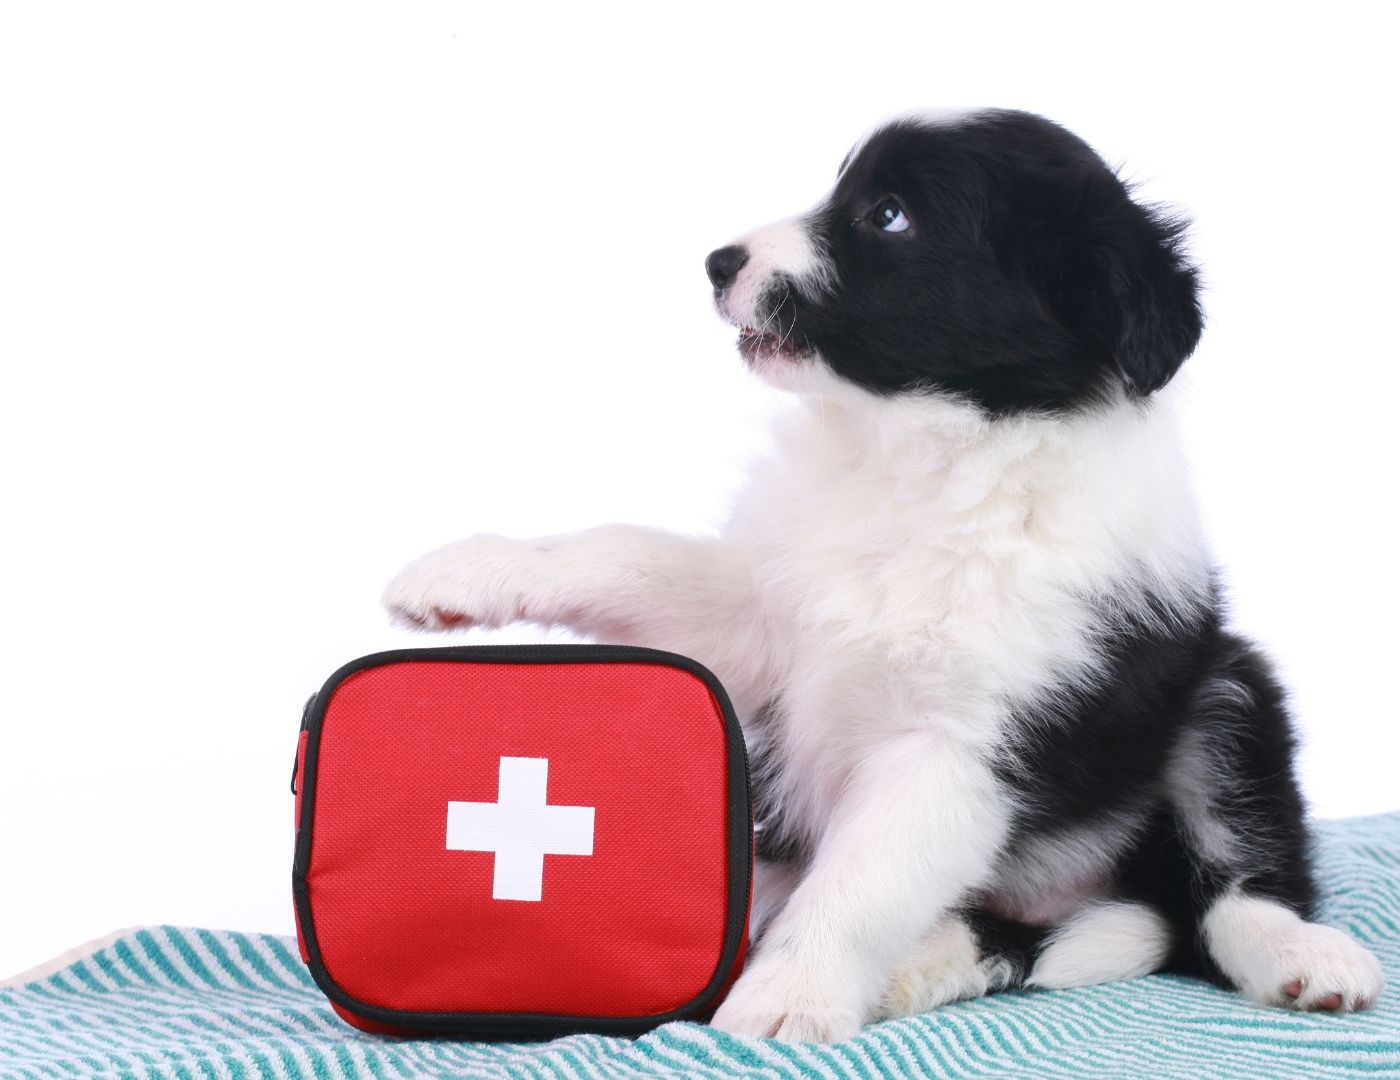 What you need to know about the best dog first aid kits